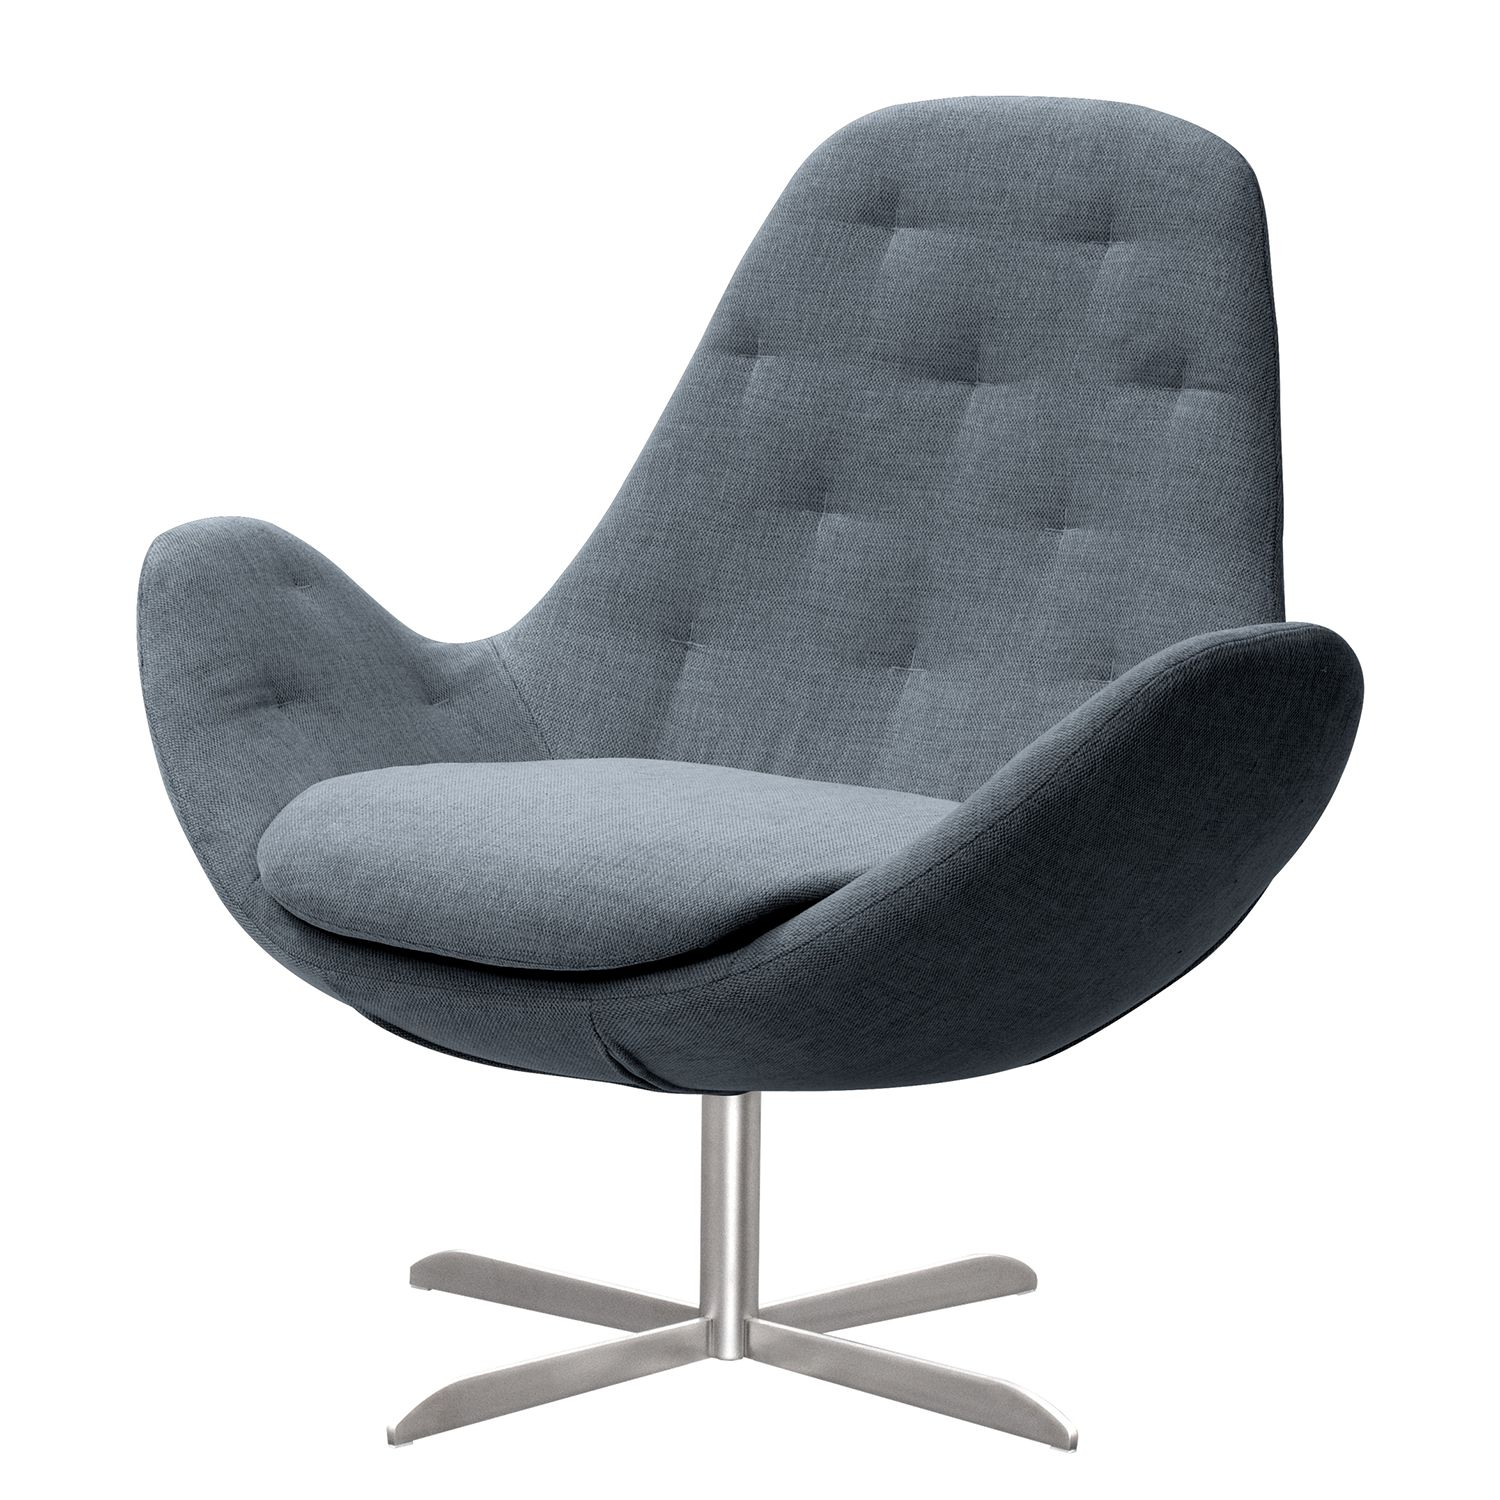 Sessel Houston IV Webstoff